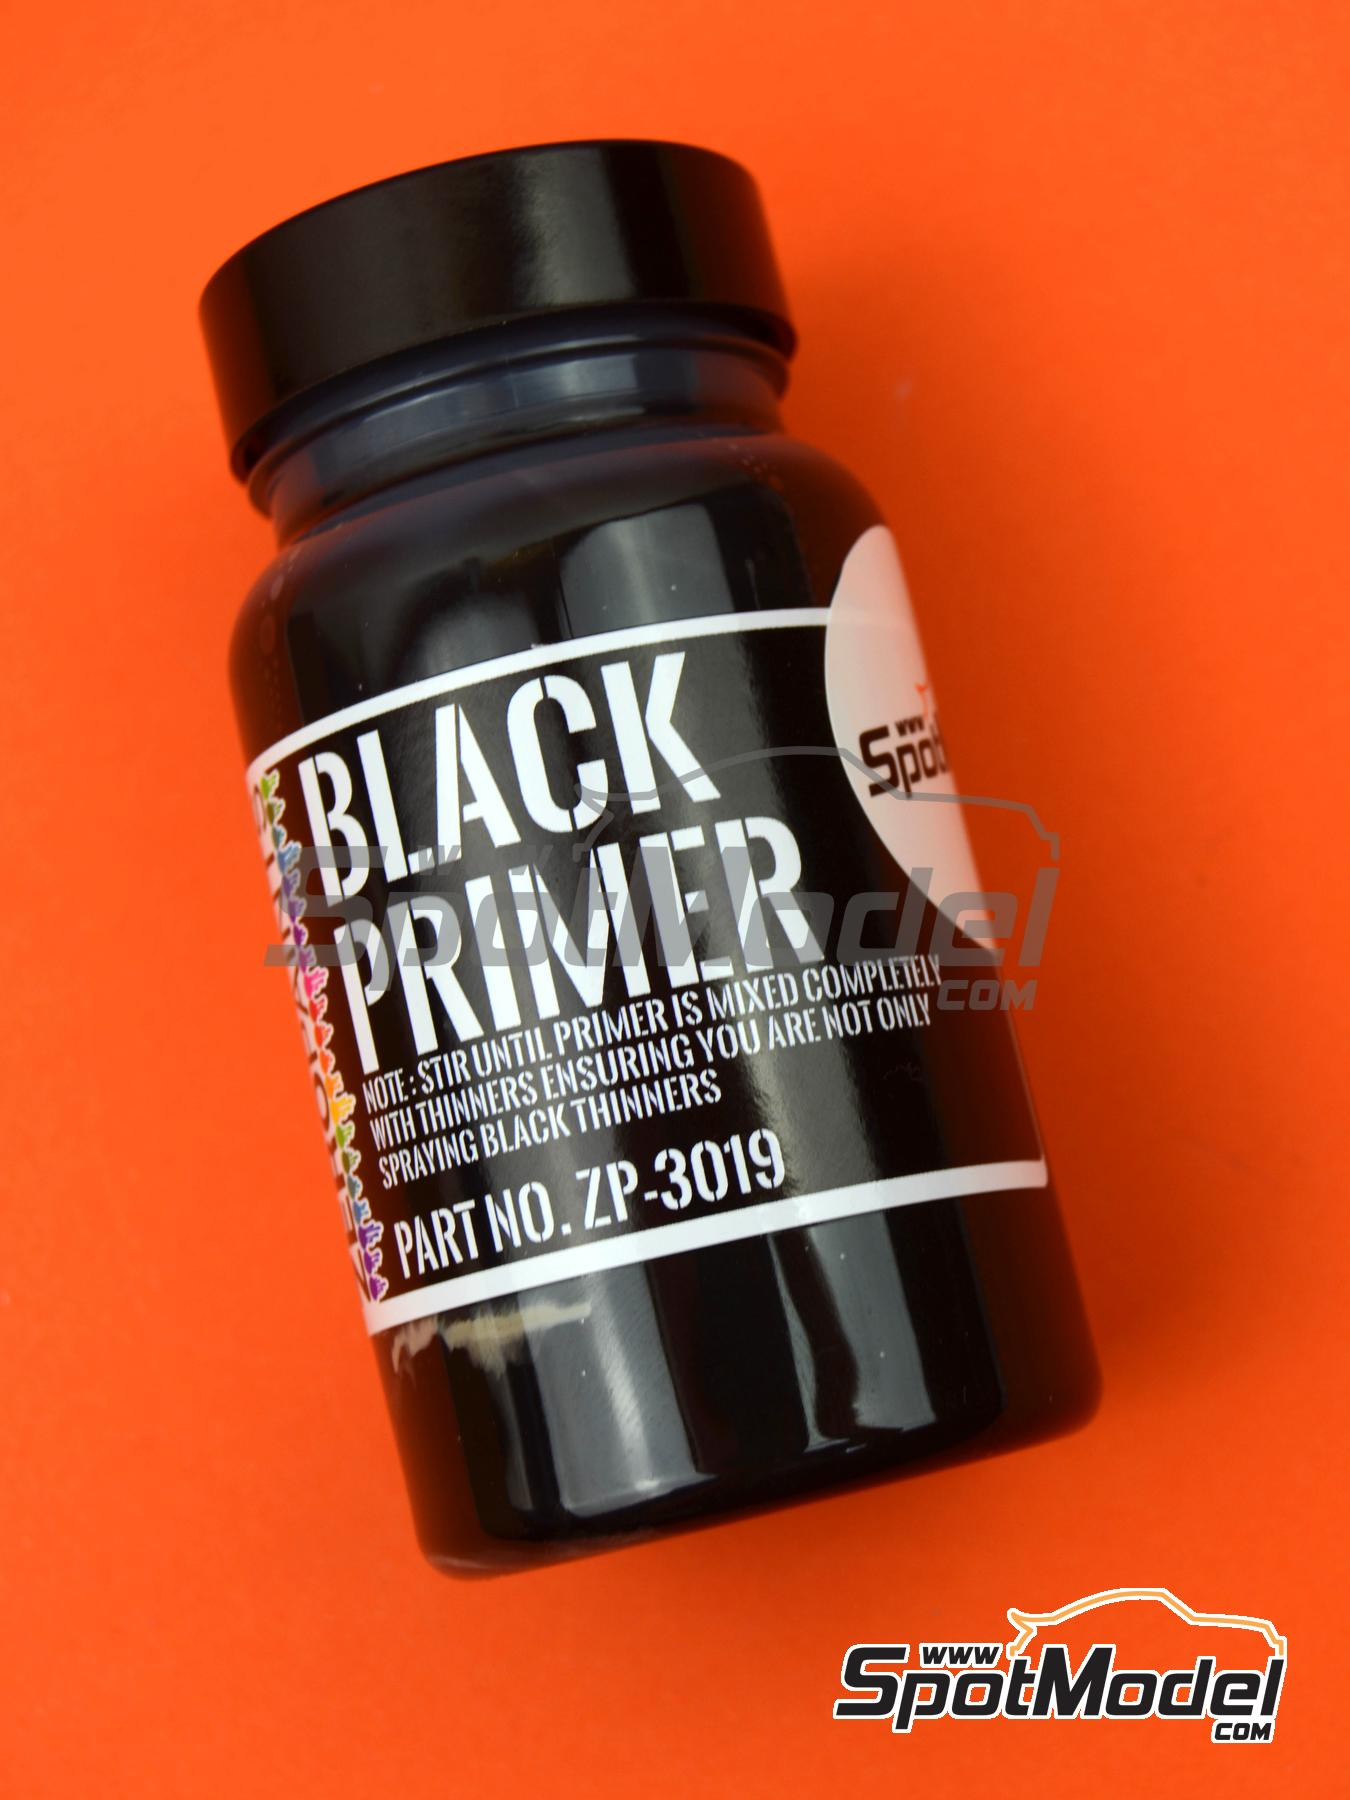 Black Primer - Micro Filler -120ml | Primer manufactured by Zero Paints (ref. ZP-3019) image